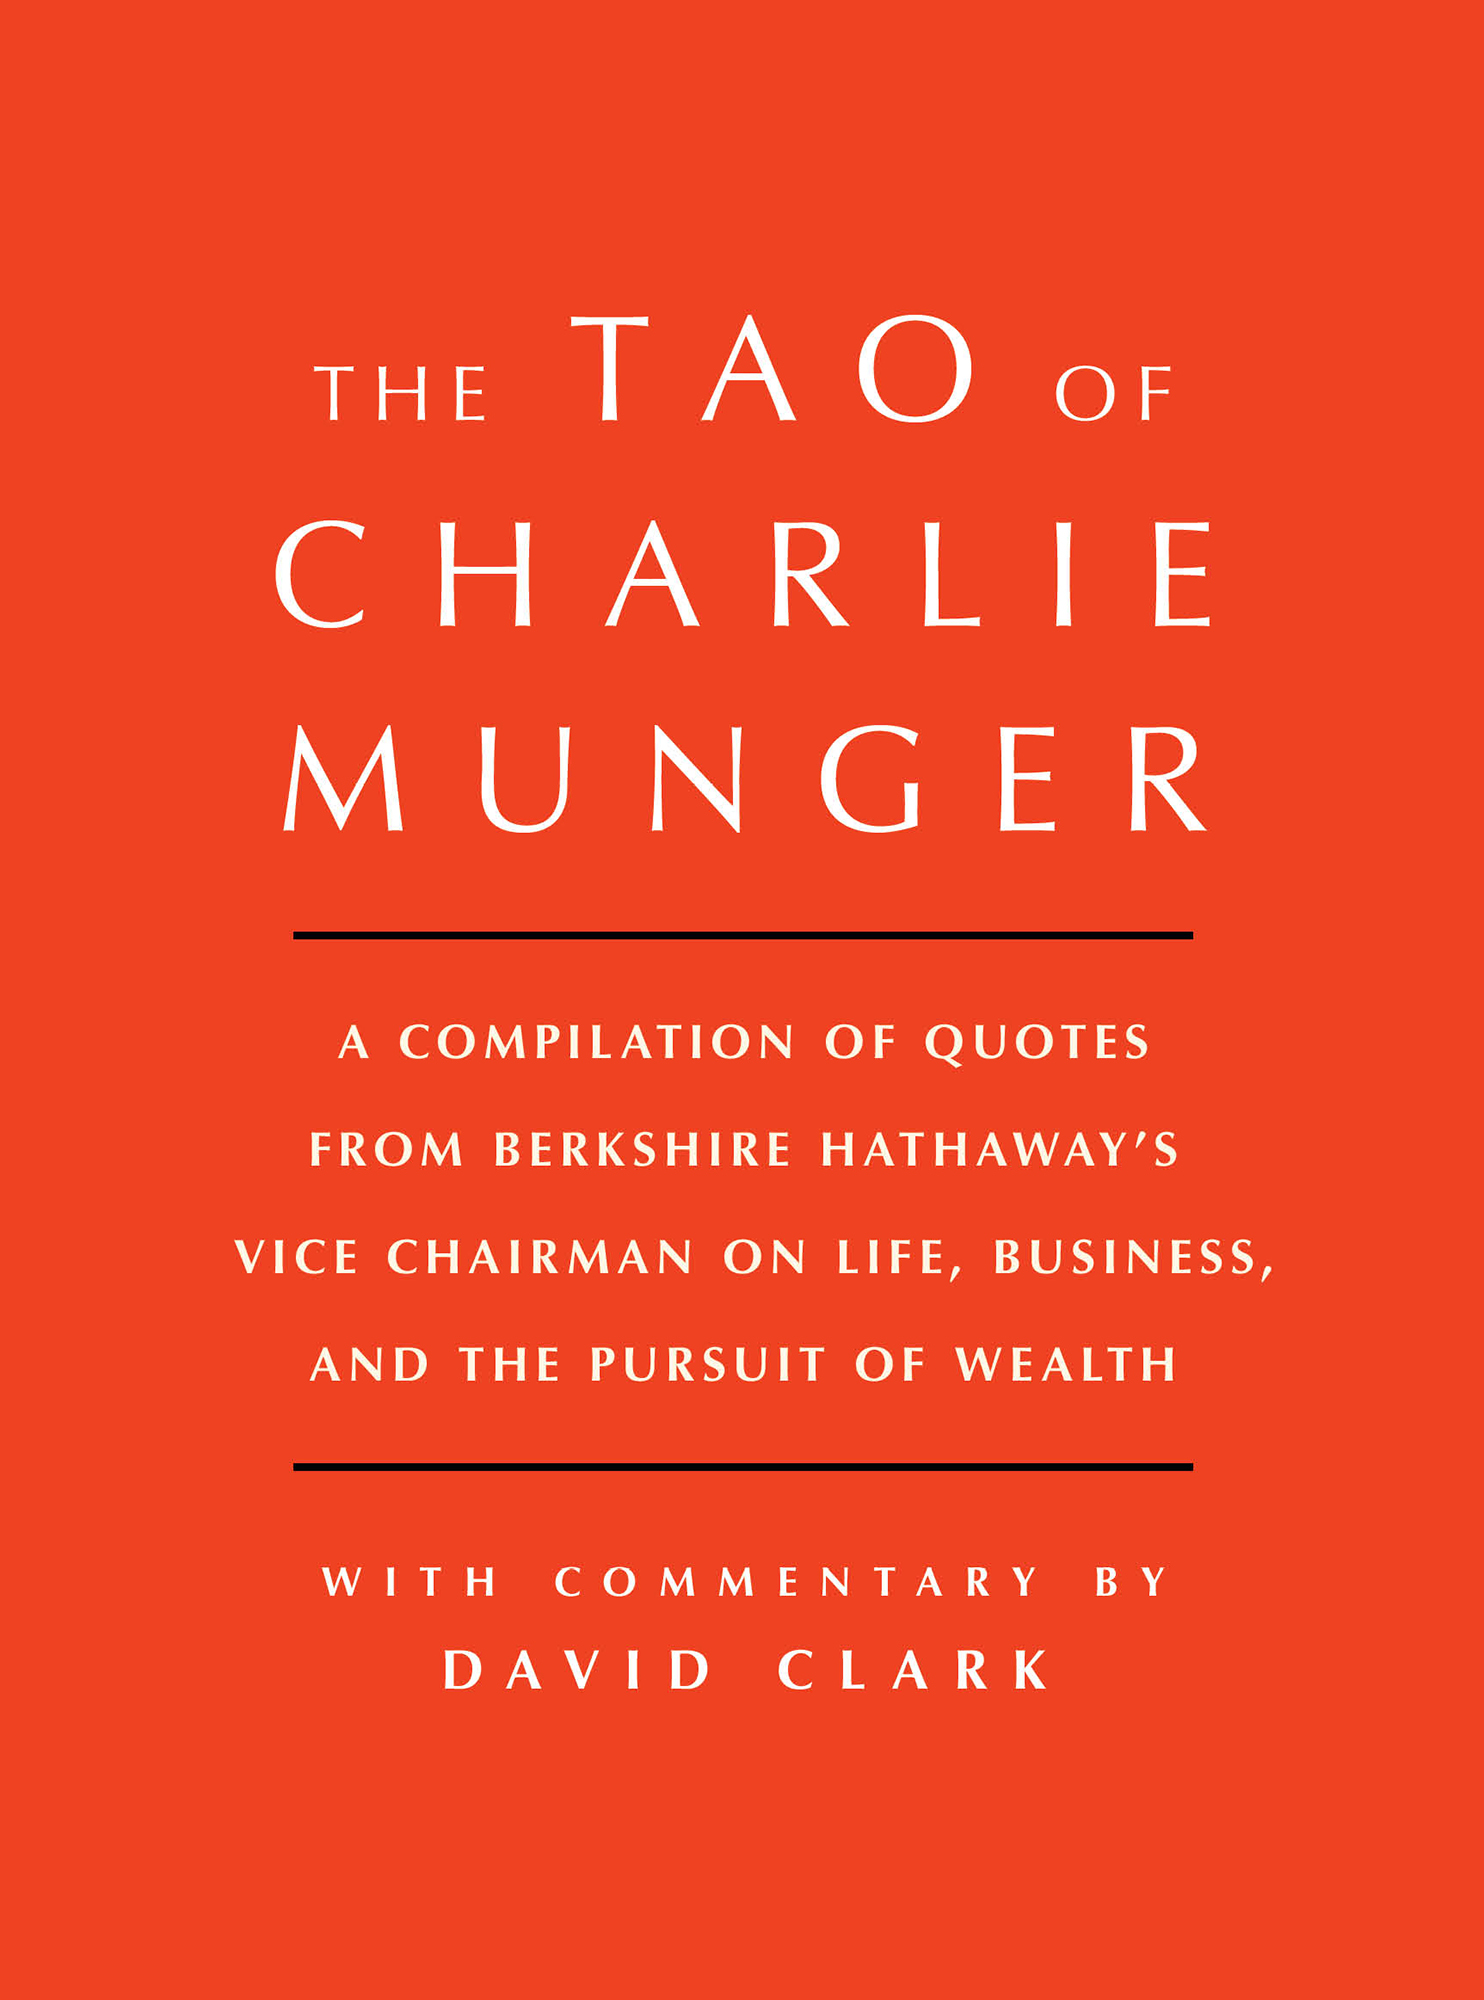 Tao of Charlie Munger: A Compilation of Quotes from Berkshire Hathaway's Vice Chairman on Life, Business, and...